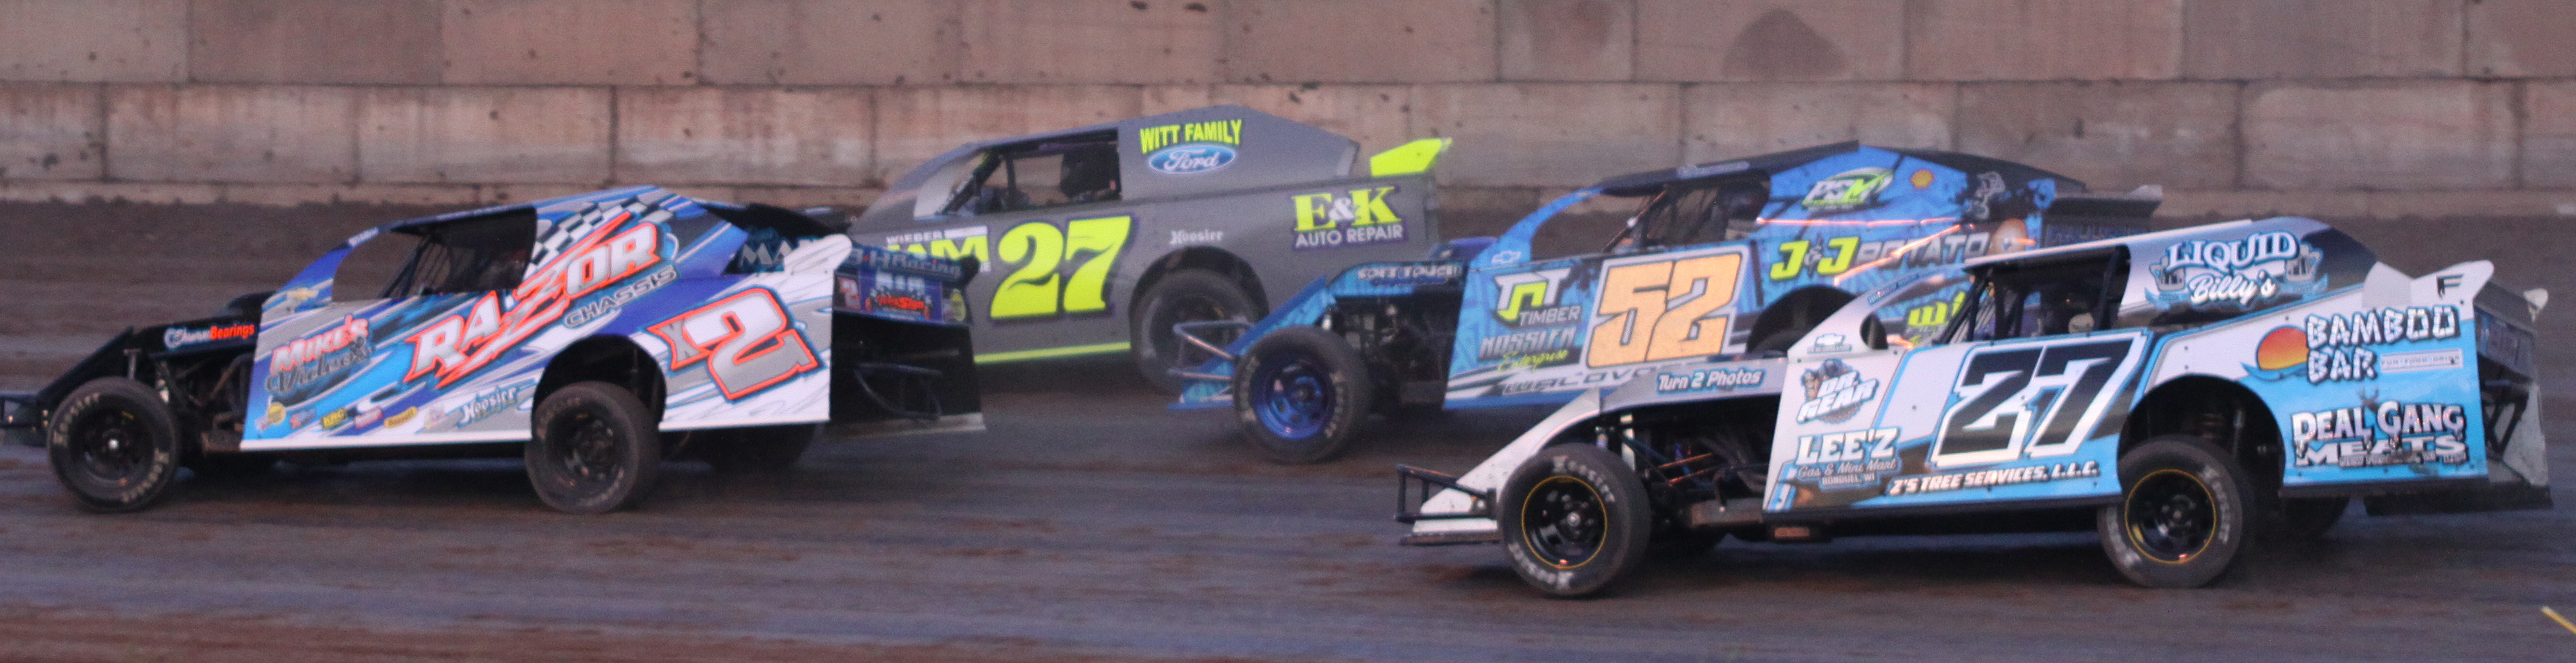 Hollie Welch (2), Tyler Sobiesczyk (27), Dylon Waldvogel (52) and Sean Falk (27) round a corner during an IMCA Sport Mod race during the Shawano Speedway&#039;s season opener on Saturday.<br />Morgan Rode | NEW Media